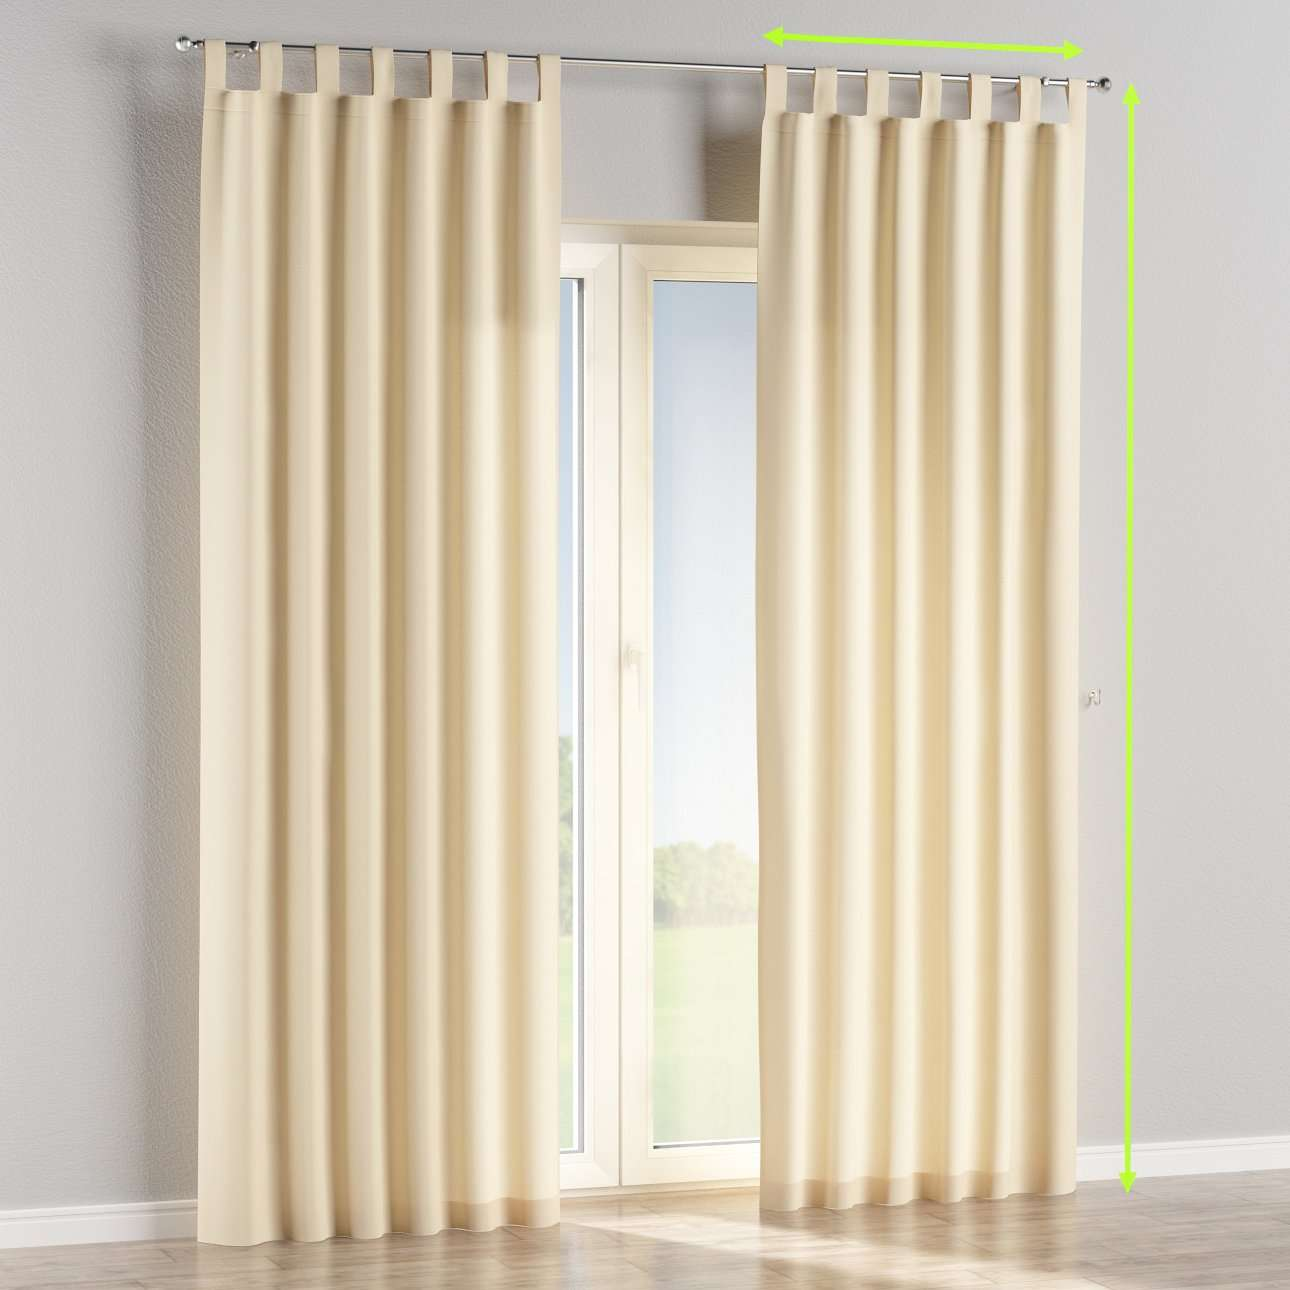 Tab top curtains in collection Cotton Panama, fabric: 702-29